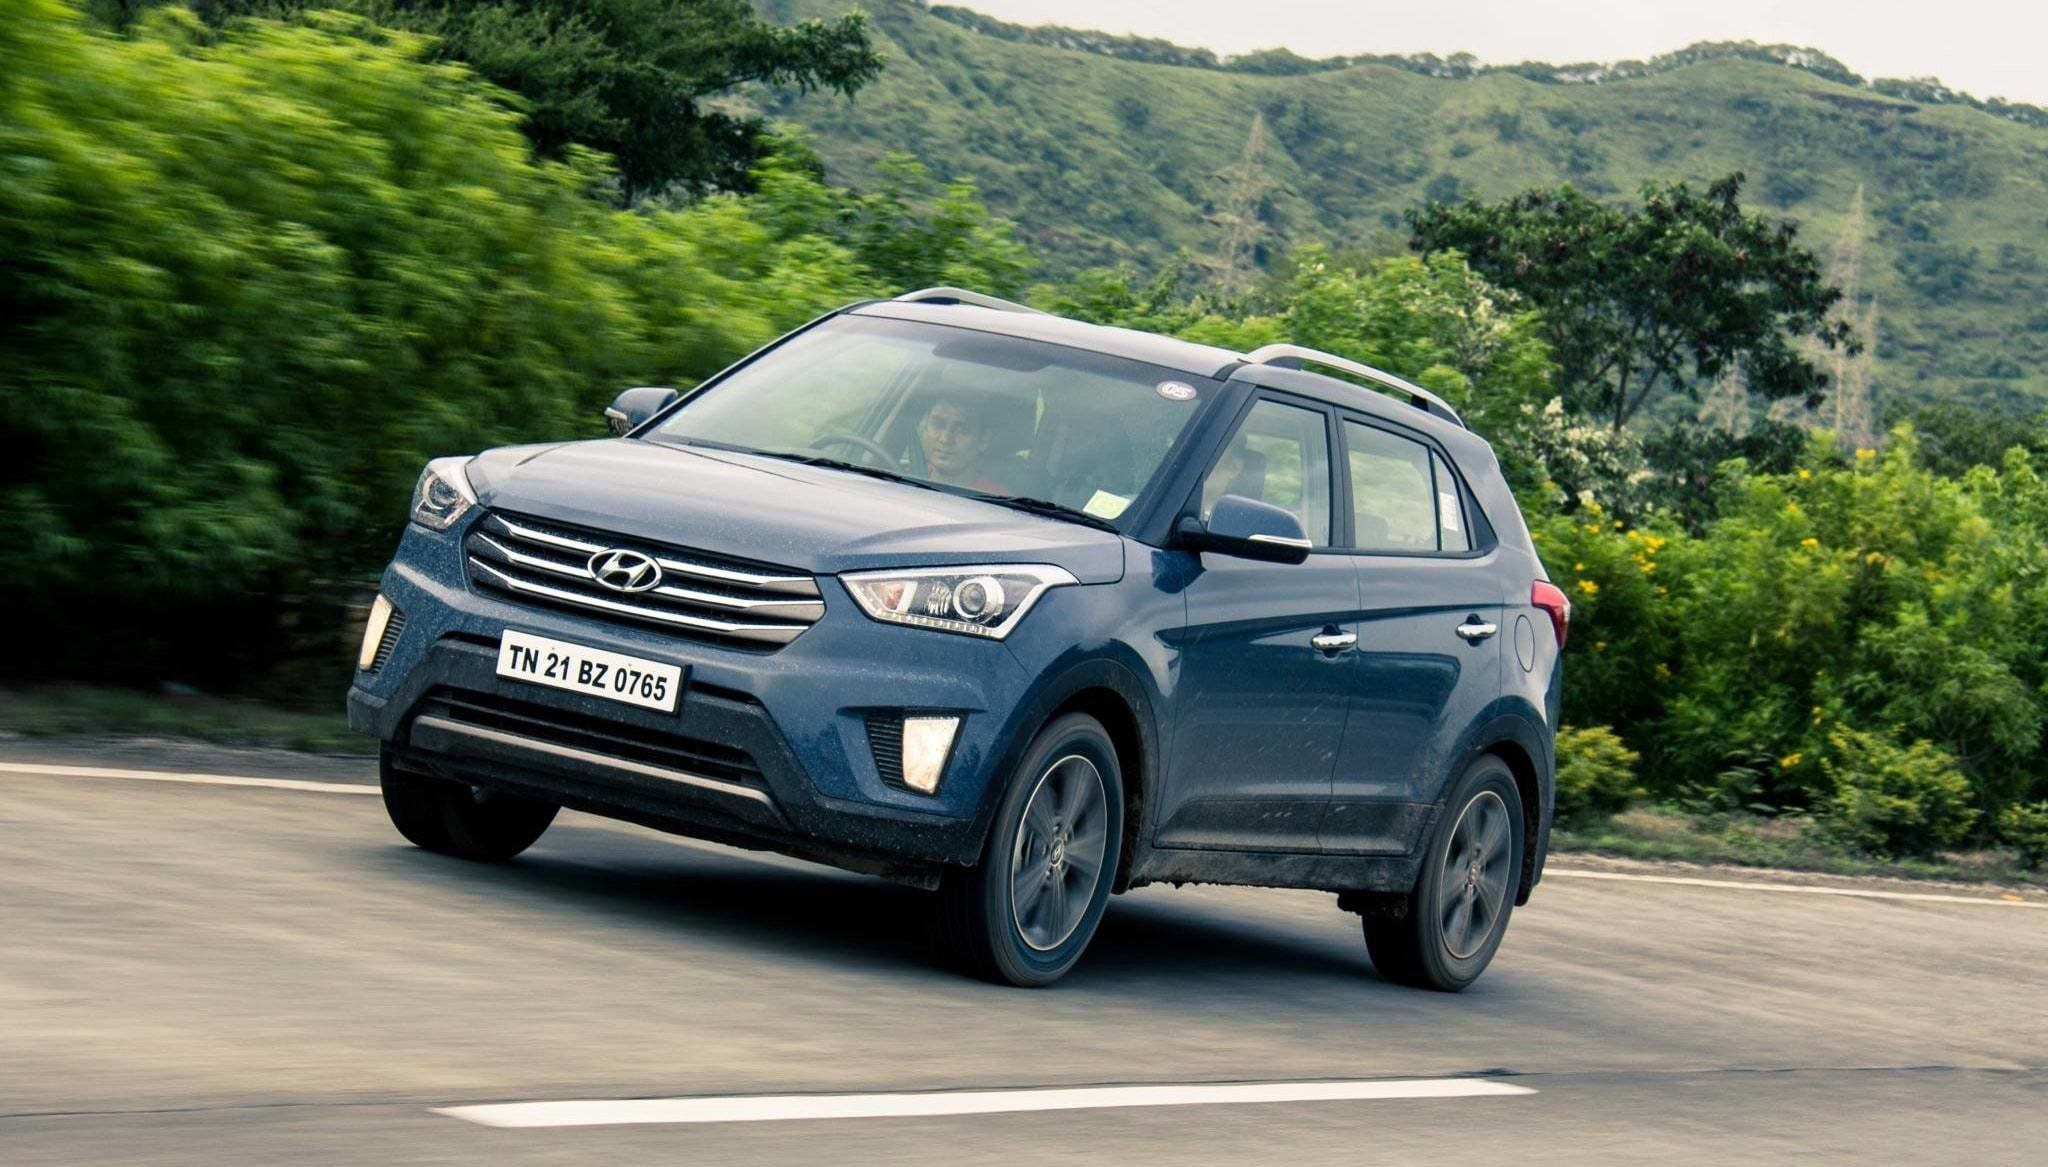 New Hyundai Creta Hd Wallpapers 7Wallpapers Net On This Month